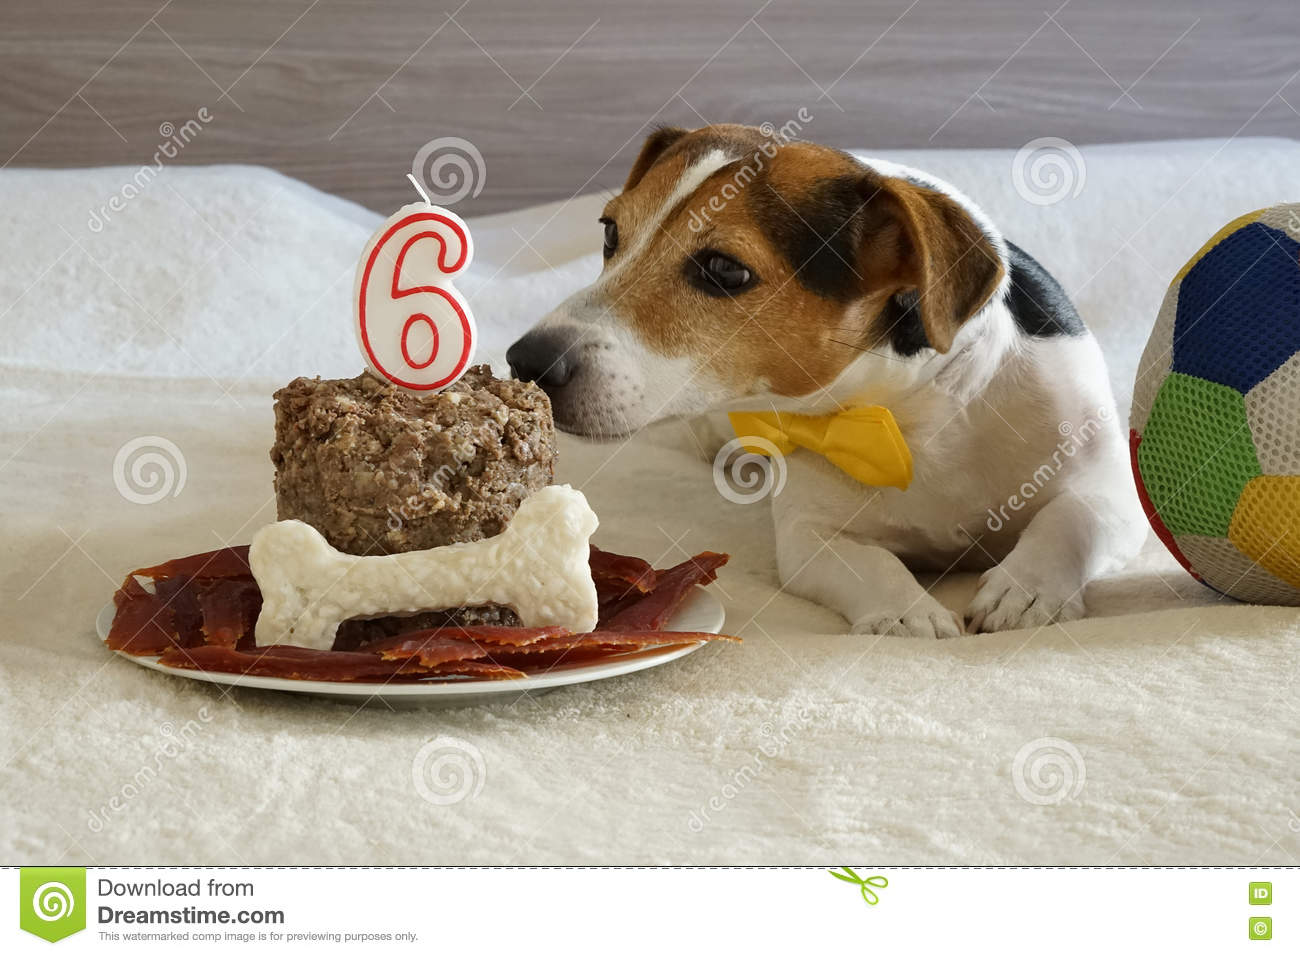 Swell Jack Russell Dog Sniffing Cake On His Sixth Birthday Stock Photo Funny Birthday Cards Online Ioscodamsfinfo